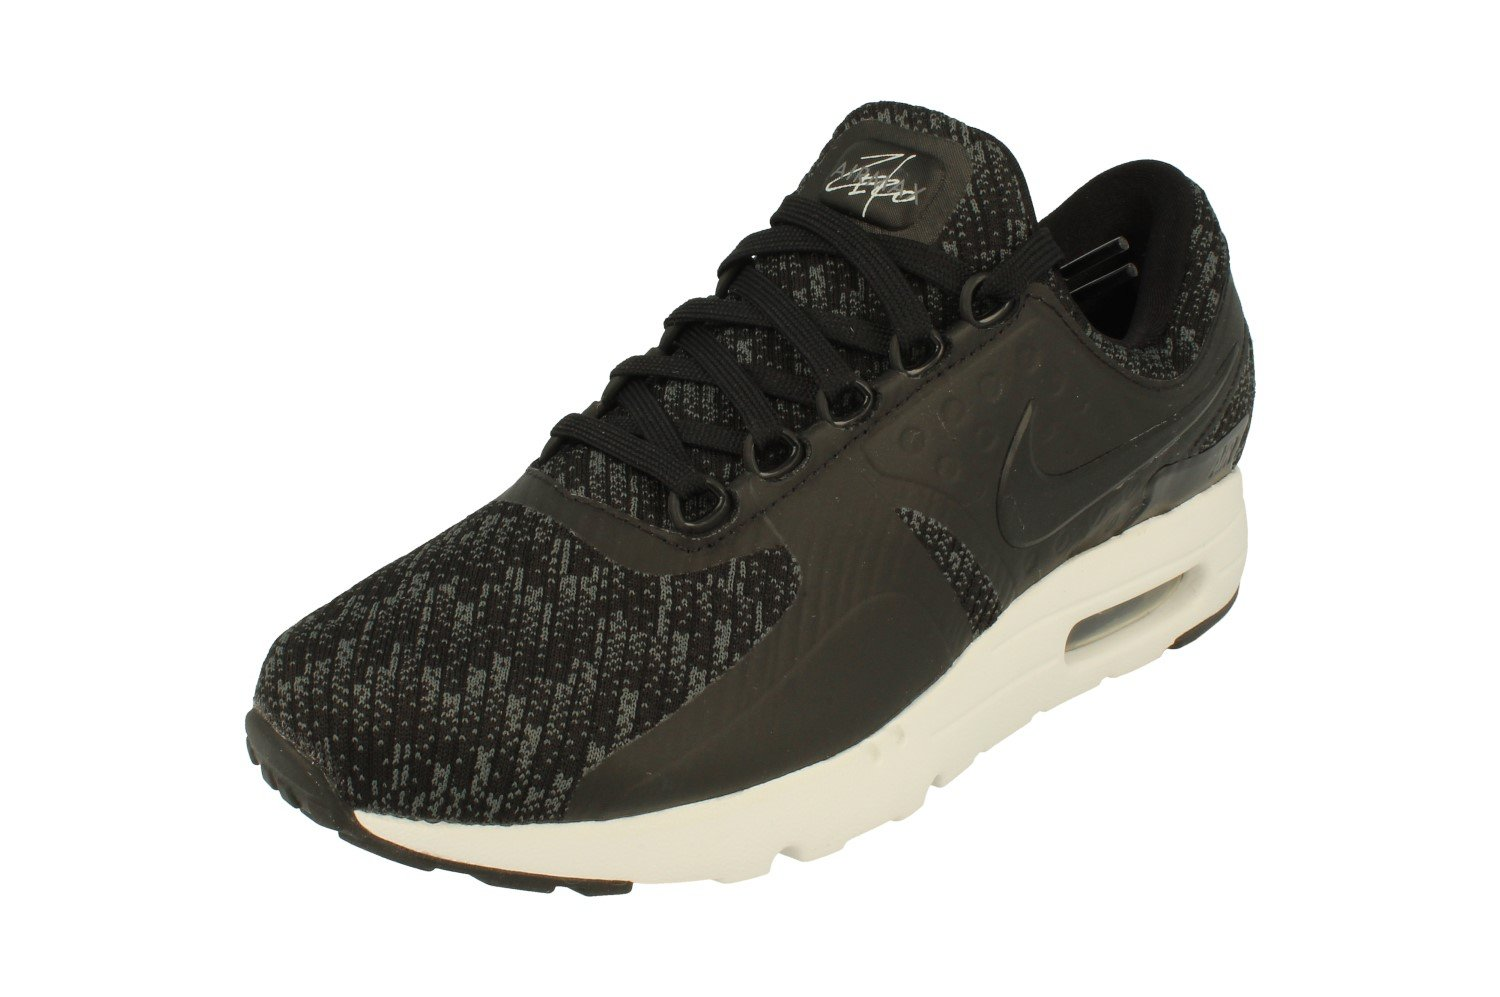 best sneakers 81189 68612 Galleon - Nike Air Max Zero SE Mens Running Trainers 918232 Sneakers Shoes  (UK 6 US 6.5 EU 39, Black Cool Grey Dark Grey 005)